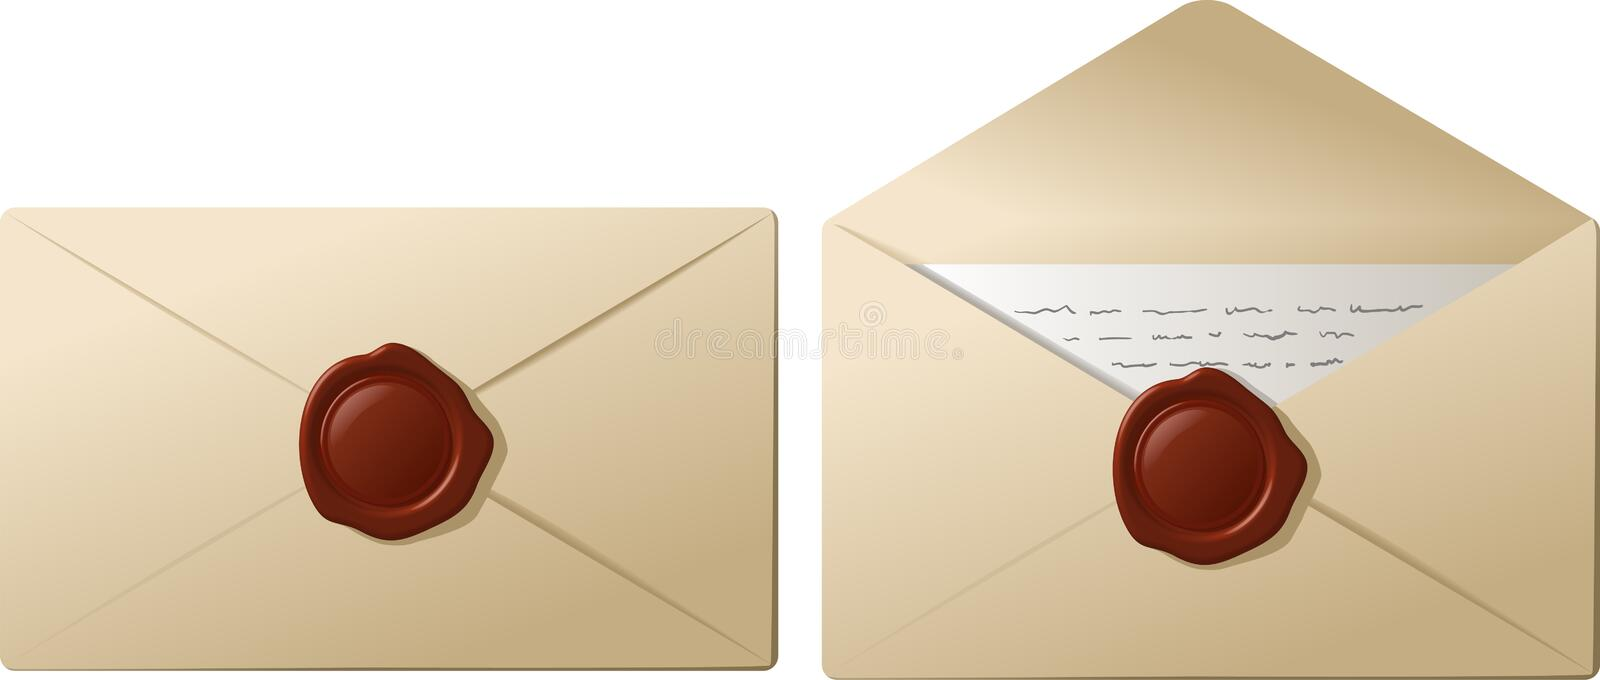 Download Envelopes with sealing wax stock vector. Illustration of mail - 18126332